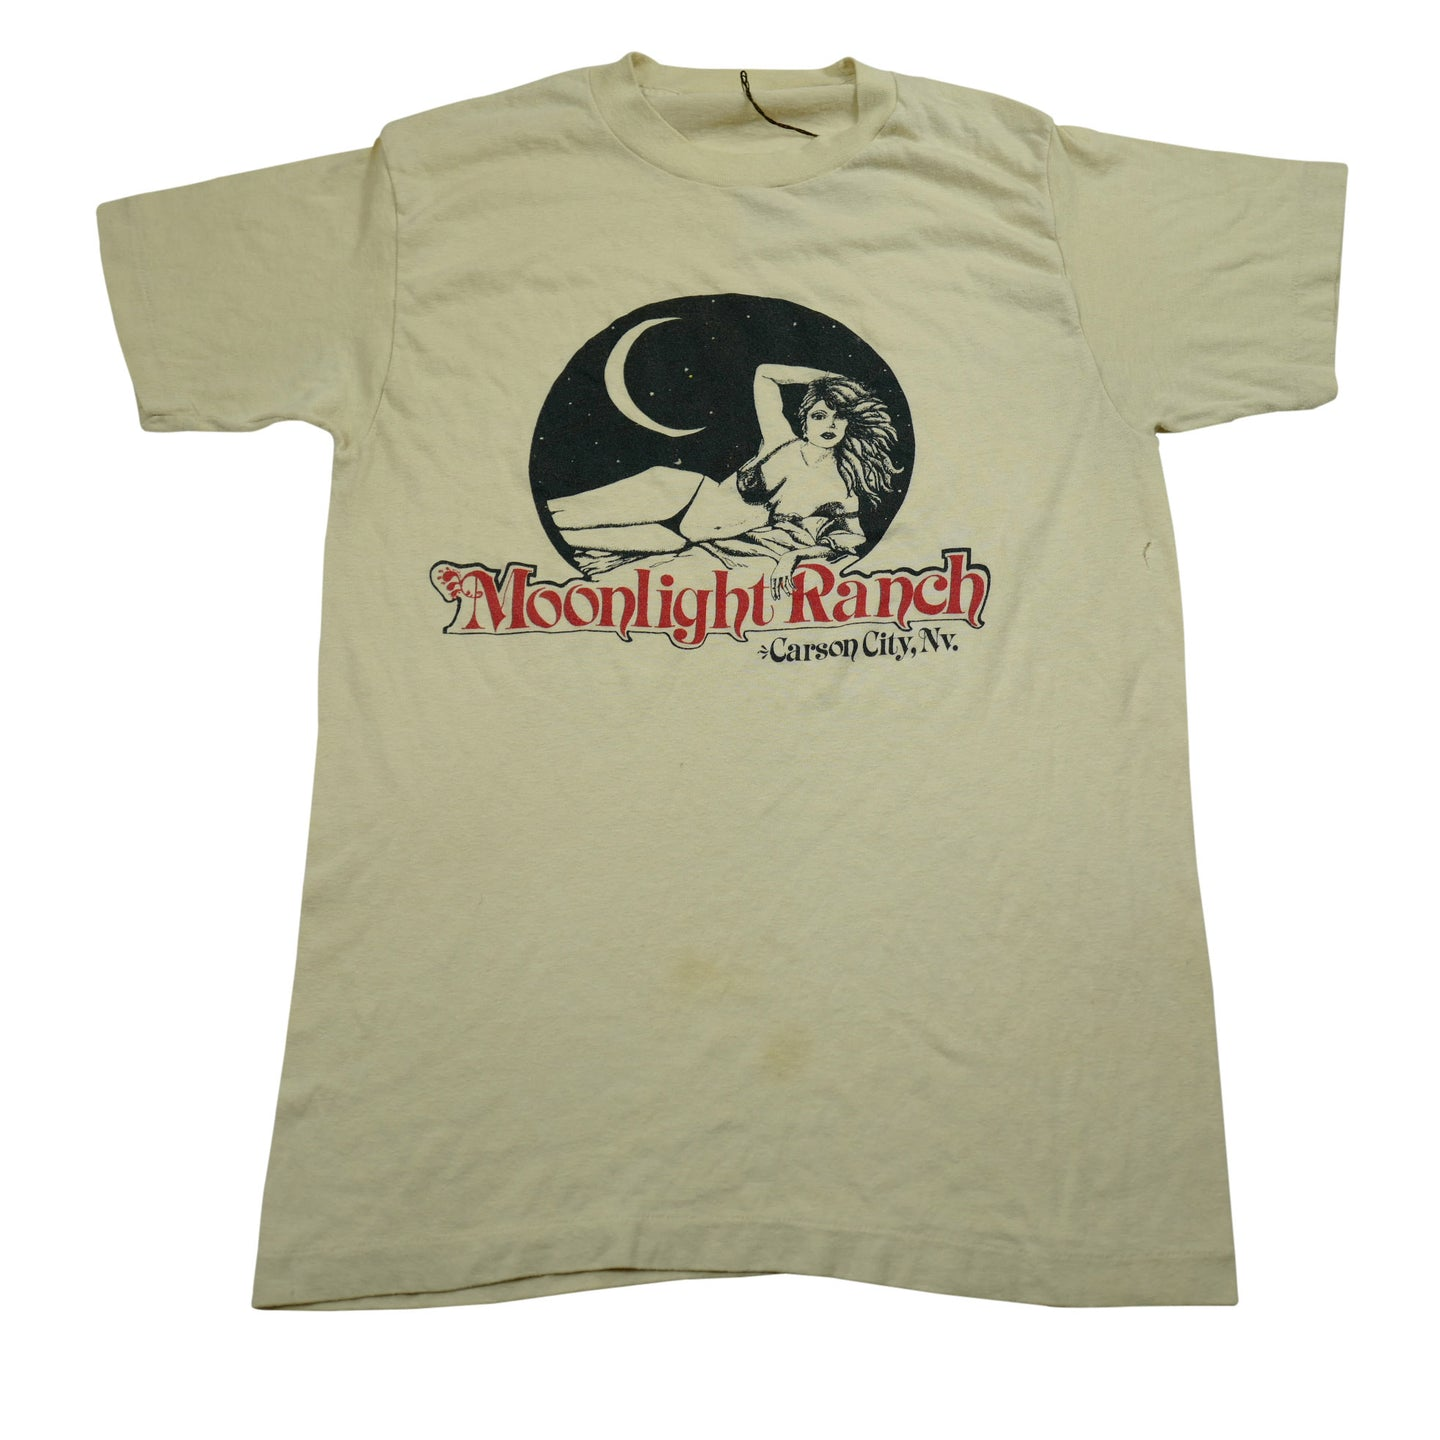 Vintage Moonlight Ranch Graphic Tee